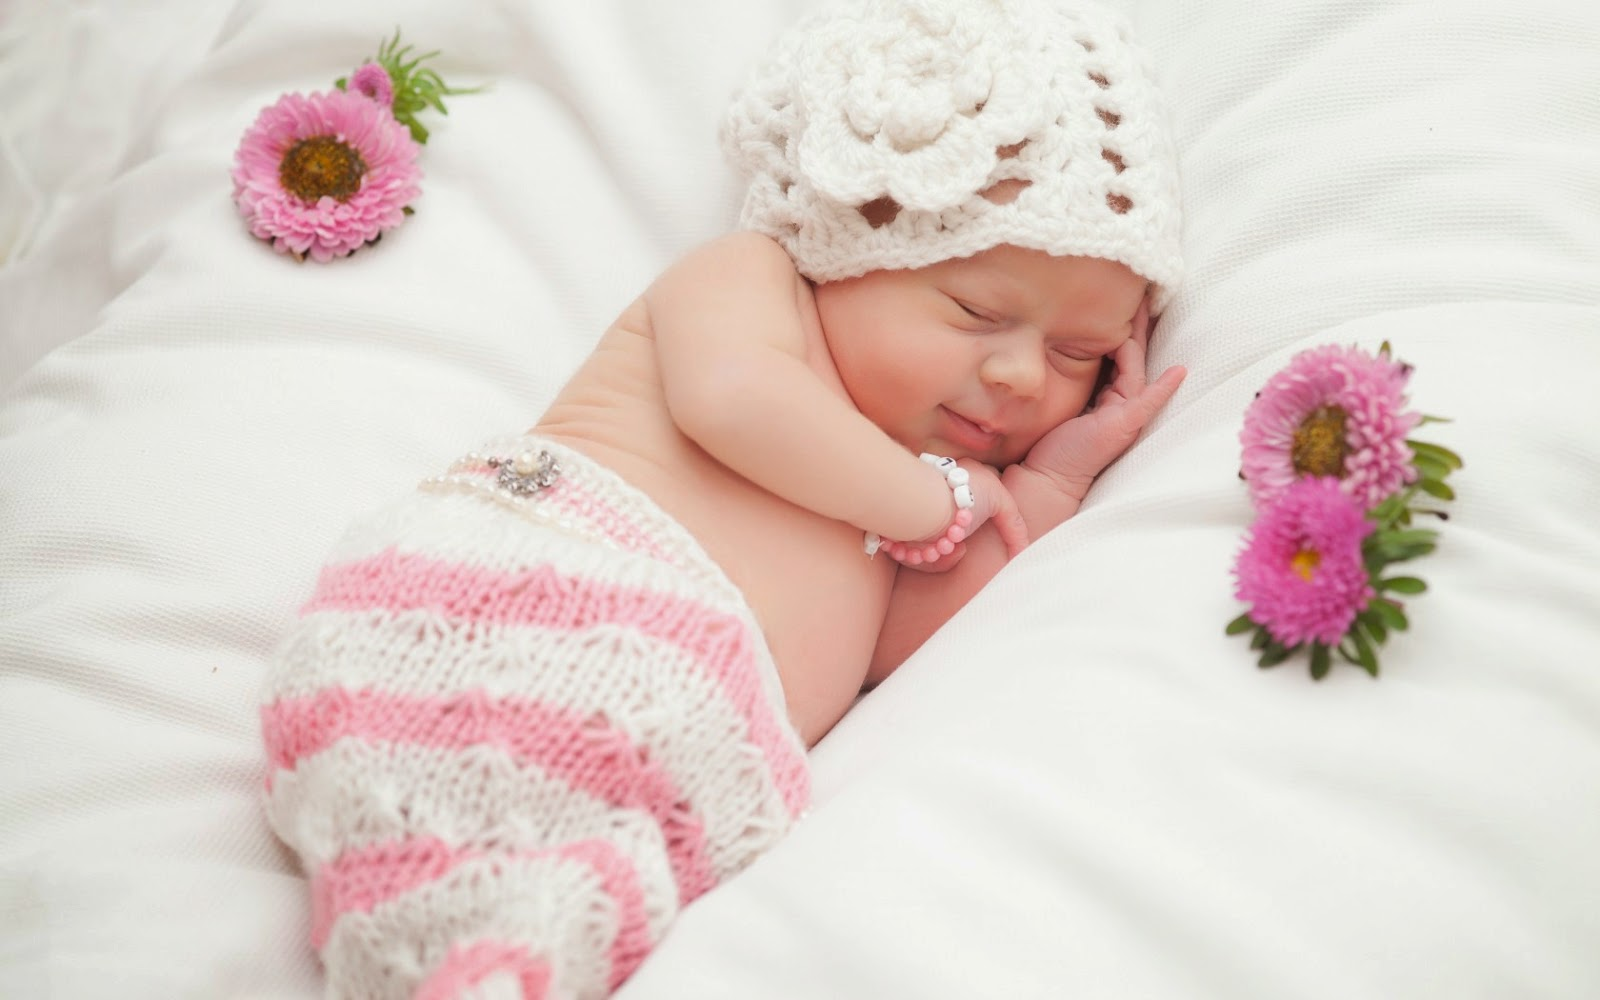 indian cute baby hd wallpaper,child,baby,pink,beanie,toddler